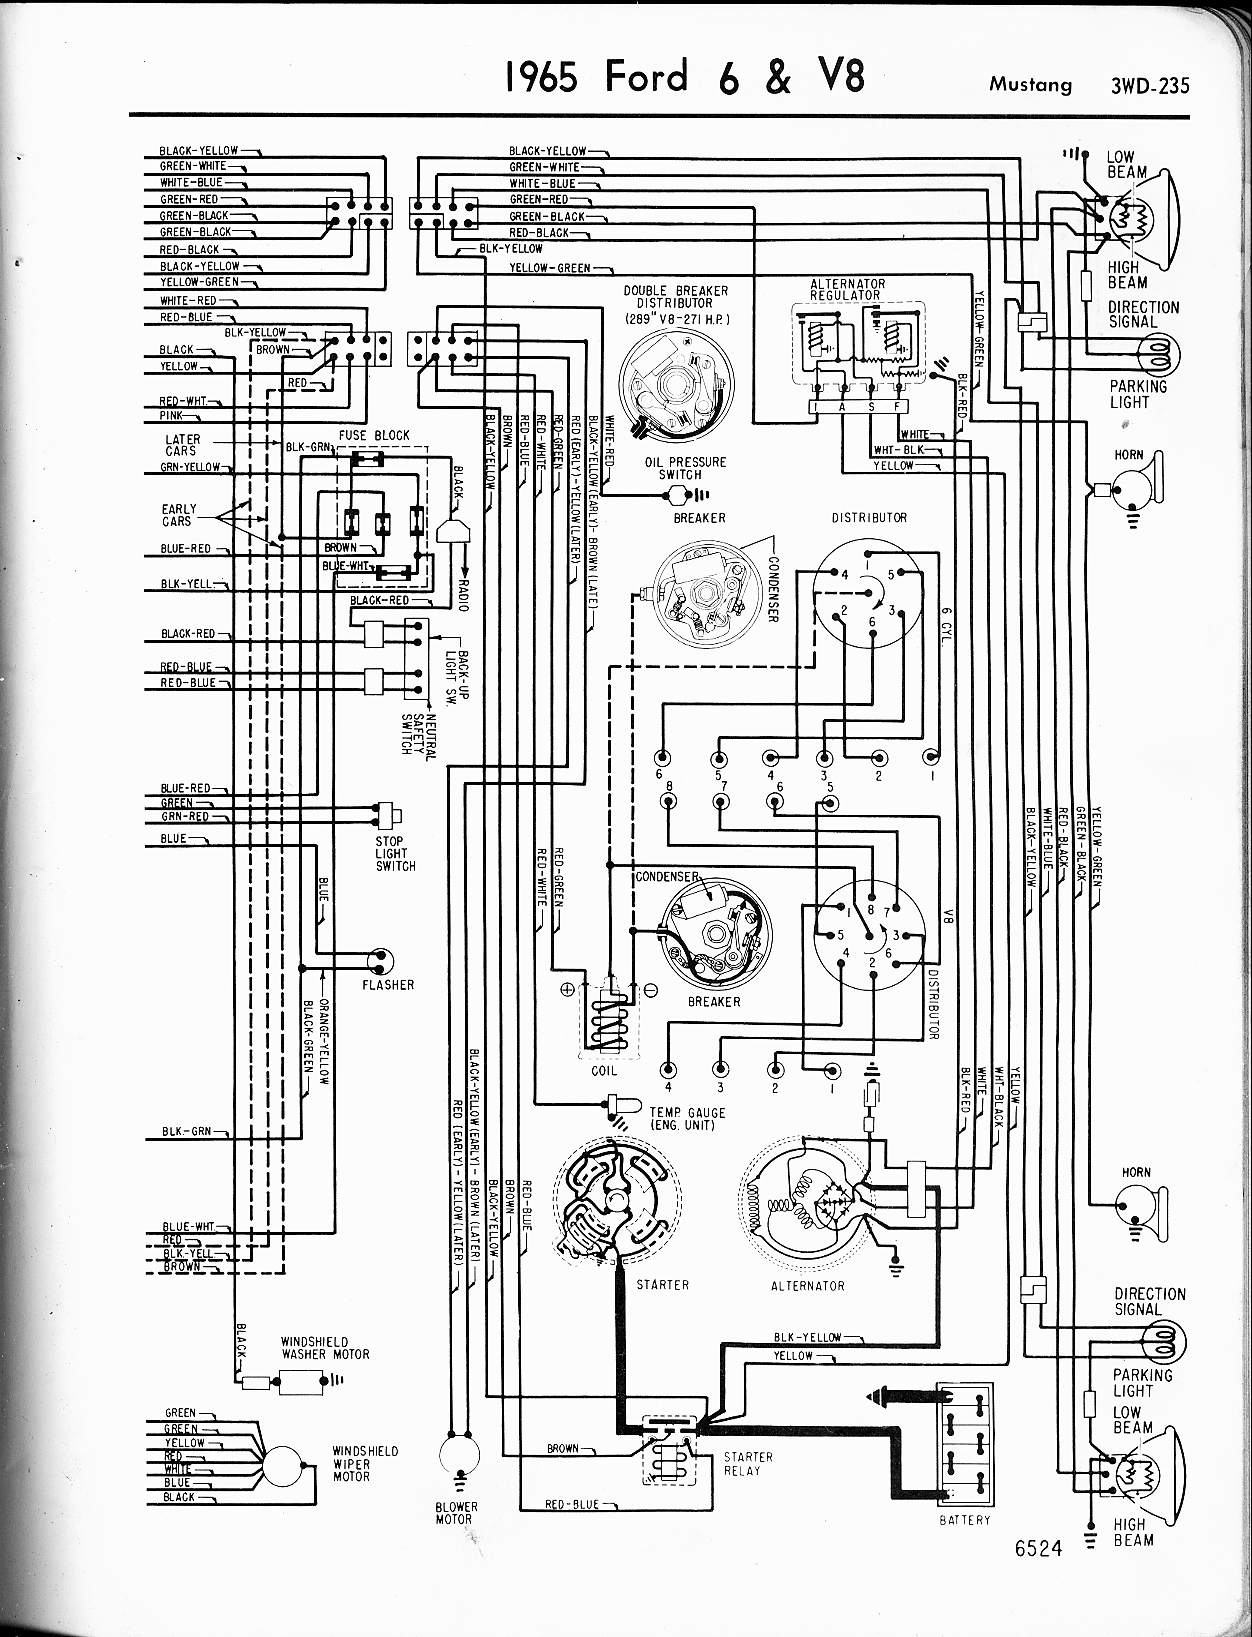 Voltage Regulator Wiring 69 Ford Pickup Great Installation Of Alternator 1968 Mustang External Diagrams Rh Wizard Com Diagram